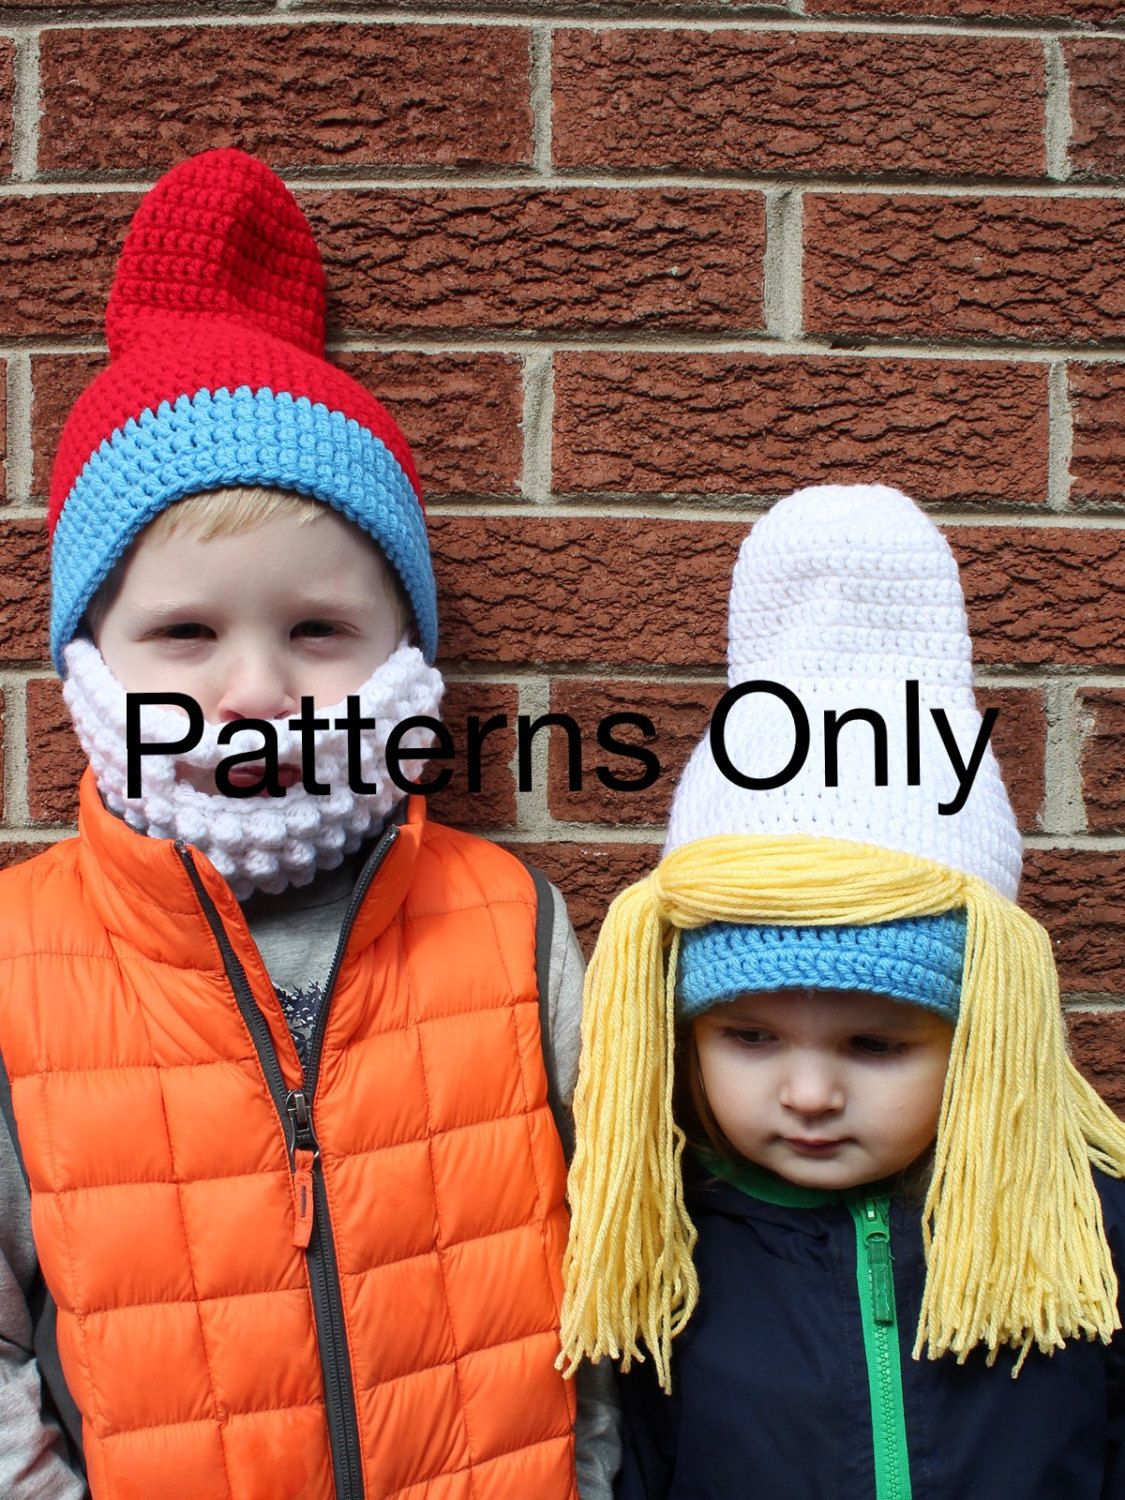 Smurf crochet hat patterns baby smurf hat with cocoon by smurf crochet hat patterns baby smurf hat with cocoon by junebugscrochets on etsy bankloansurffo Image collections